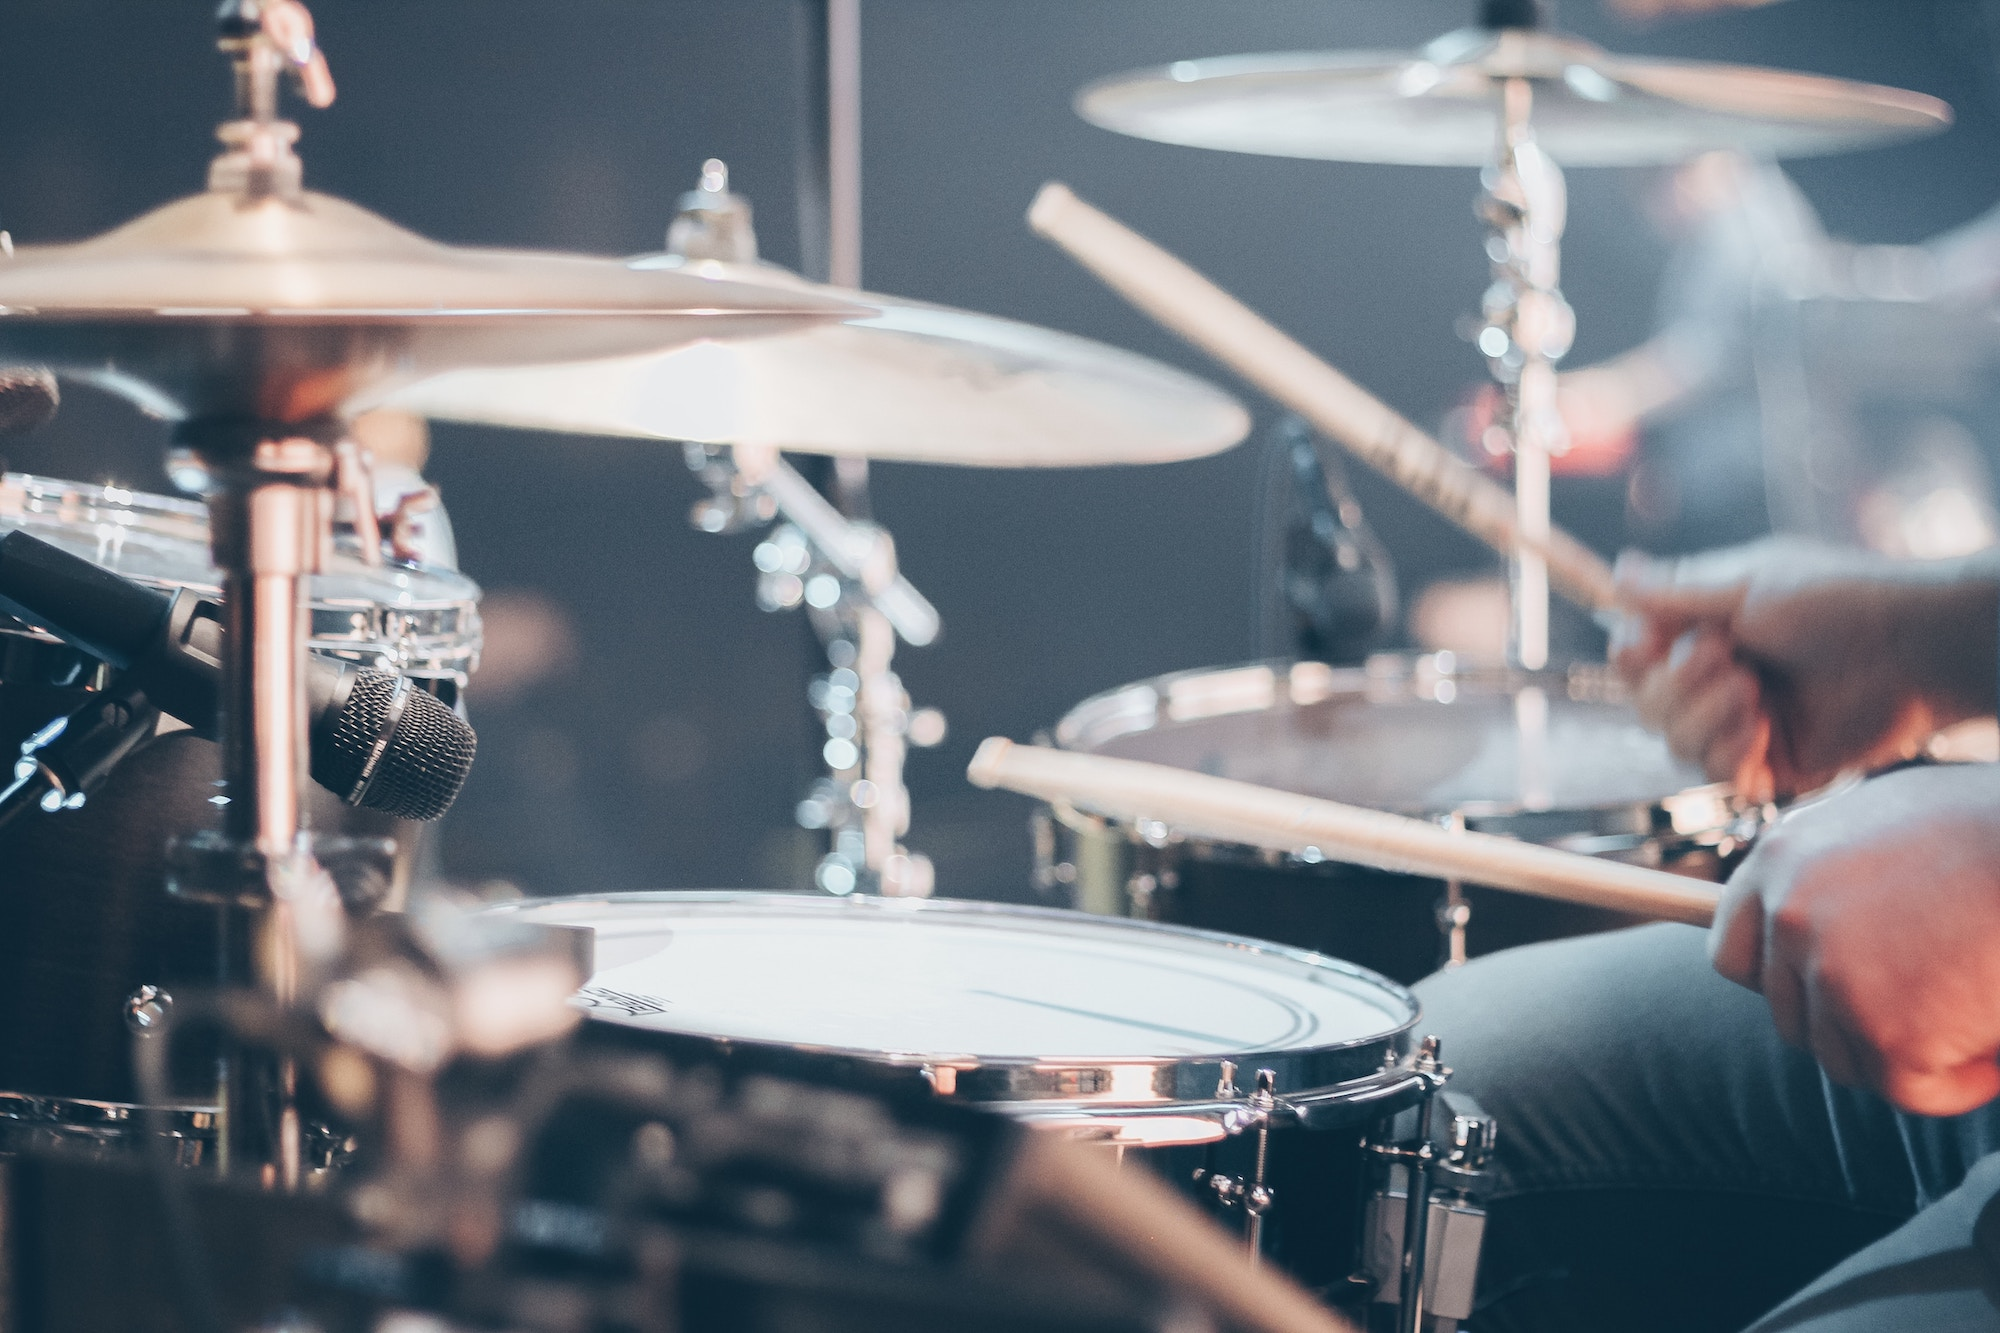 A drummer playing a drum kit.